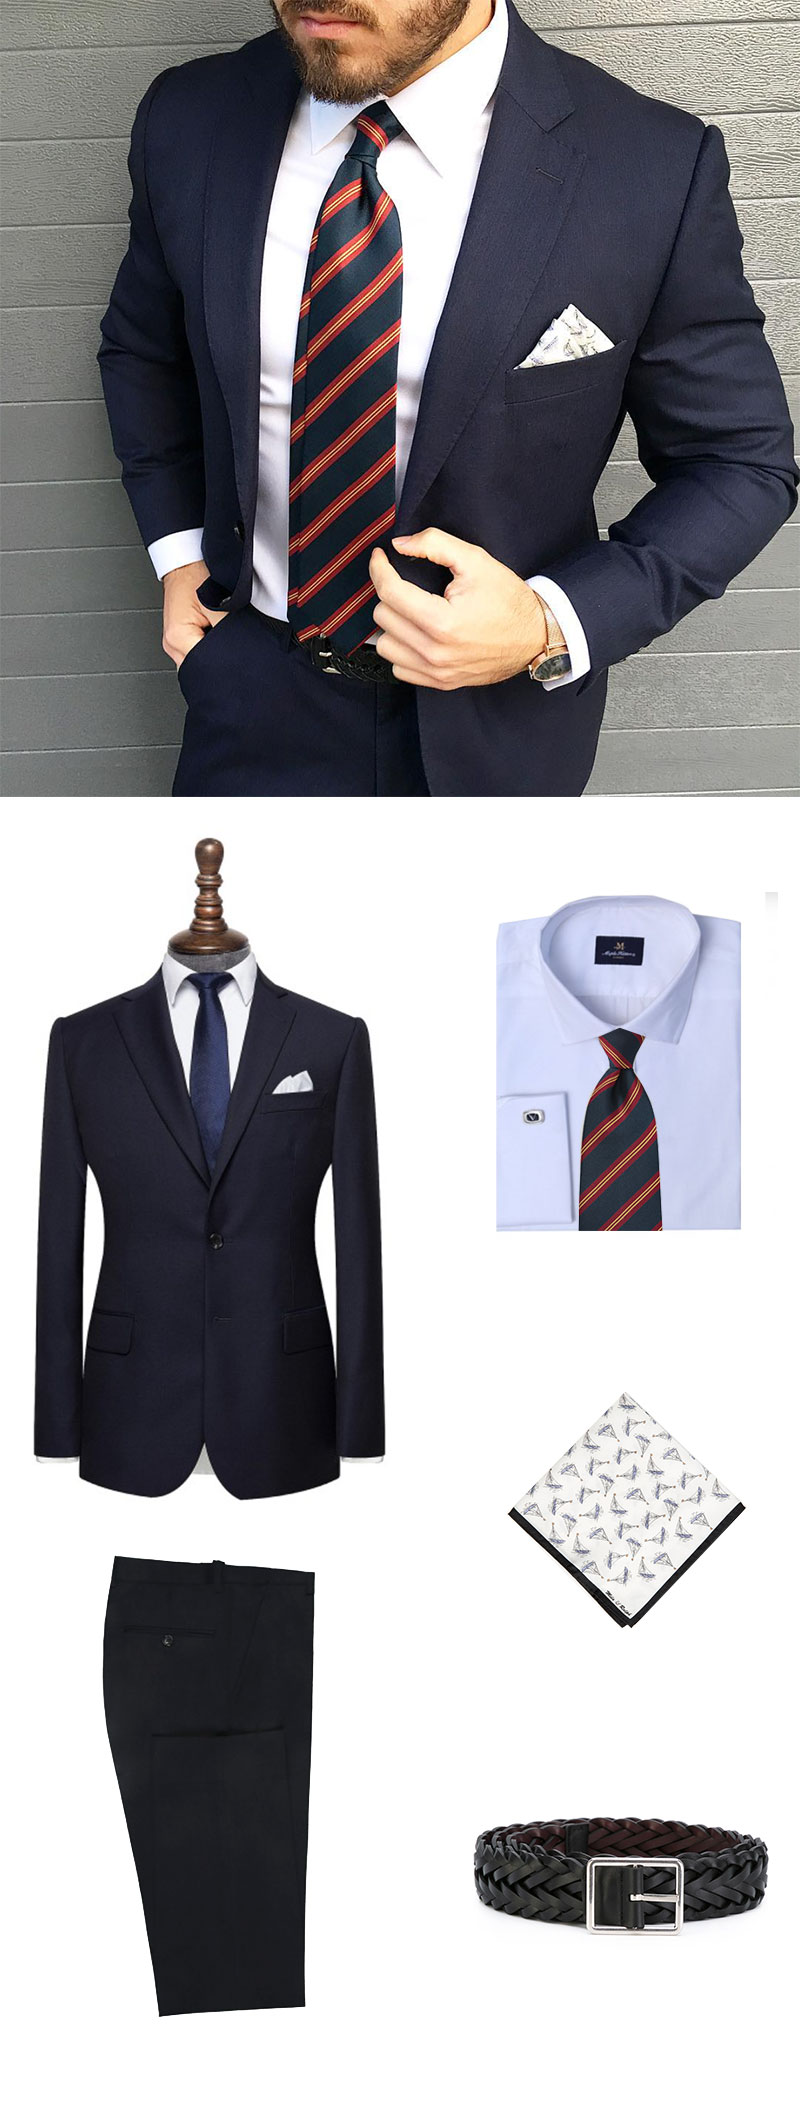 Regimental Tie and Custom Suit